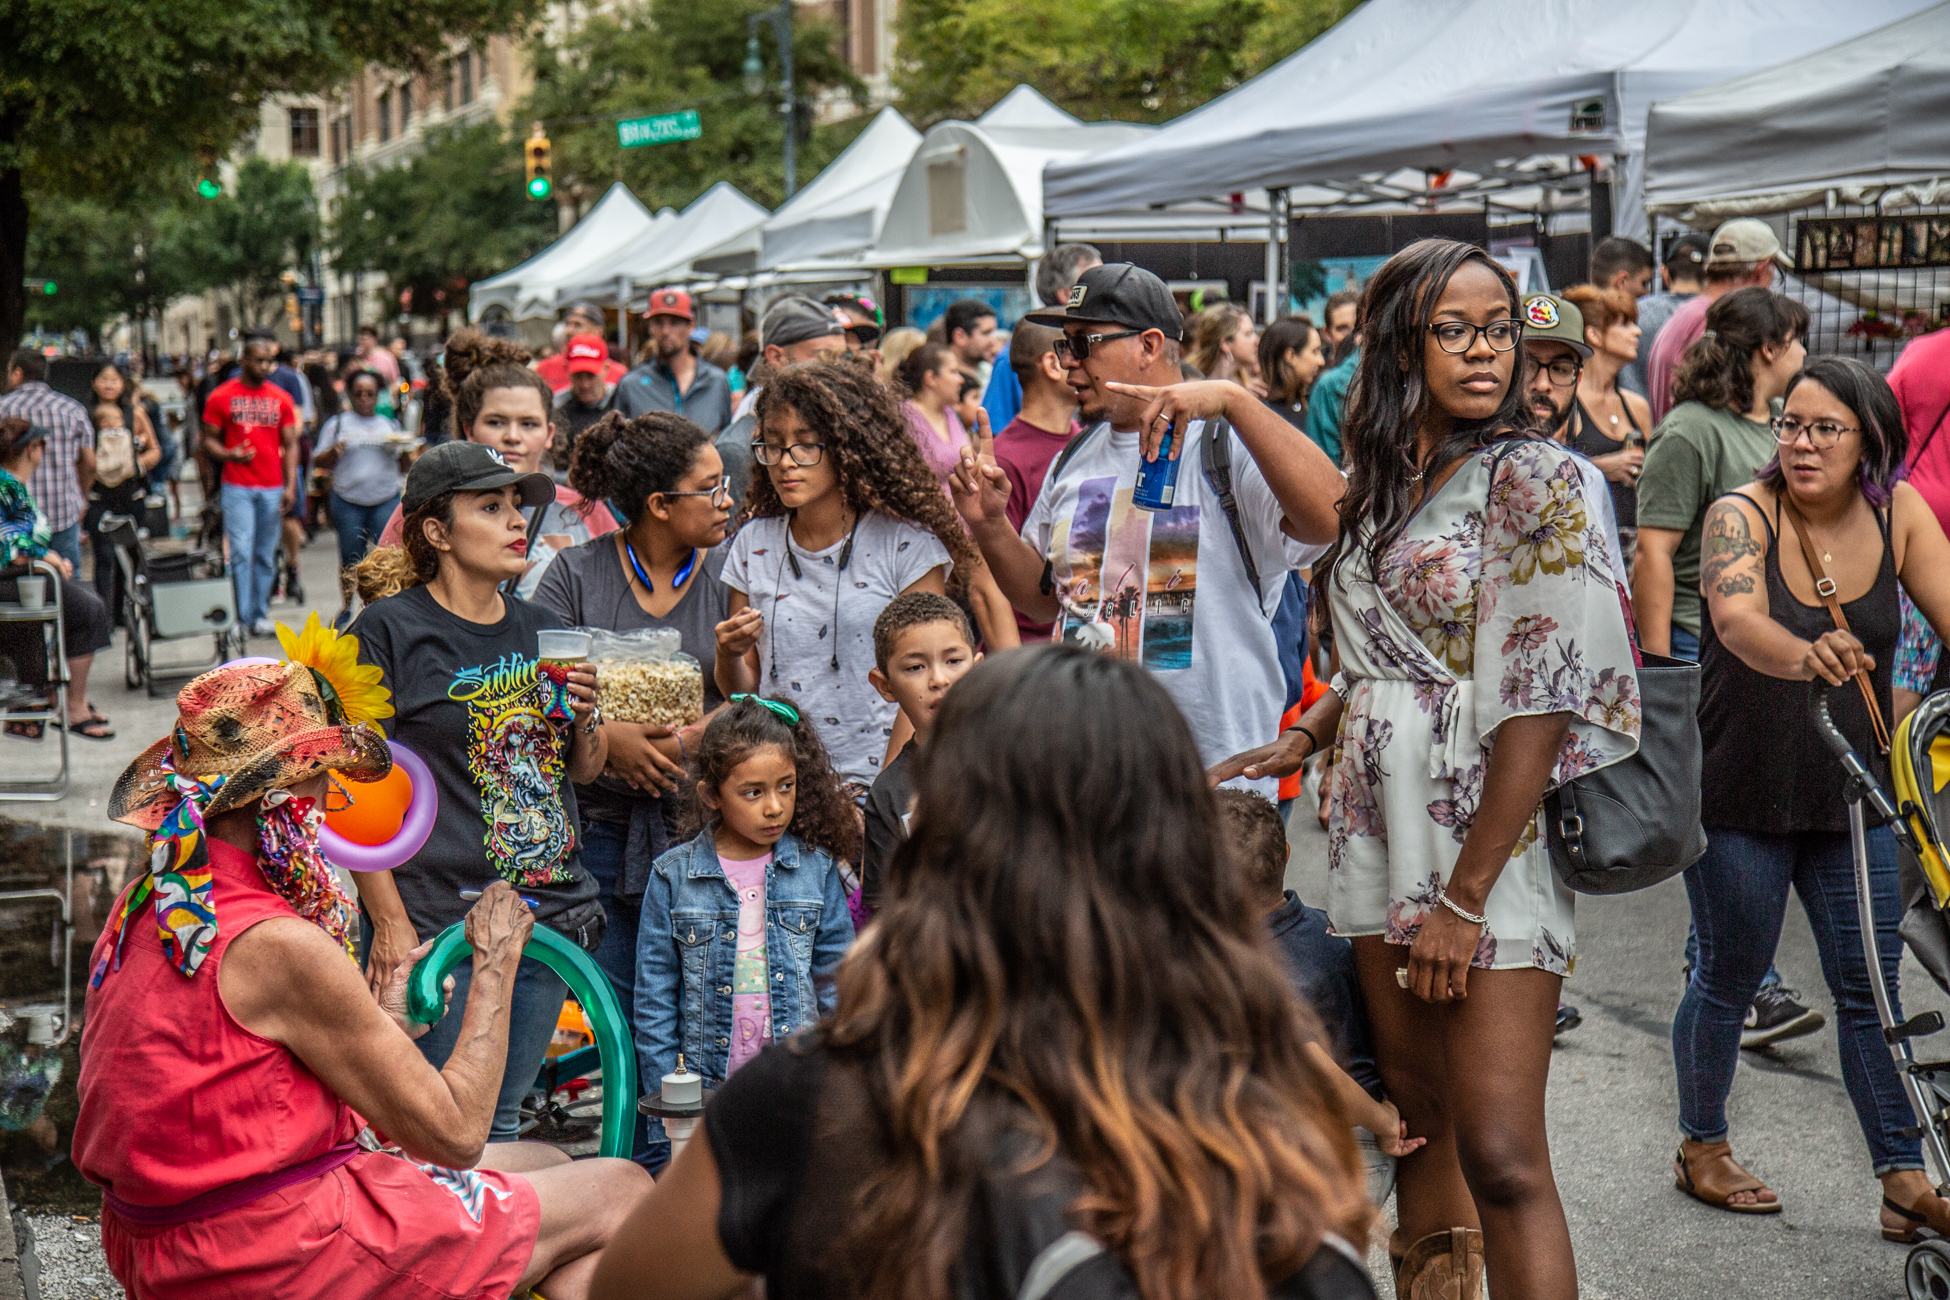 Where Does The Pecan Street Festival Take Place